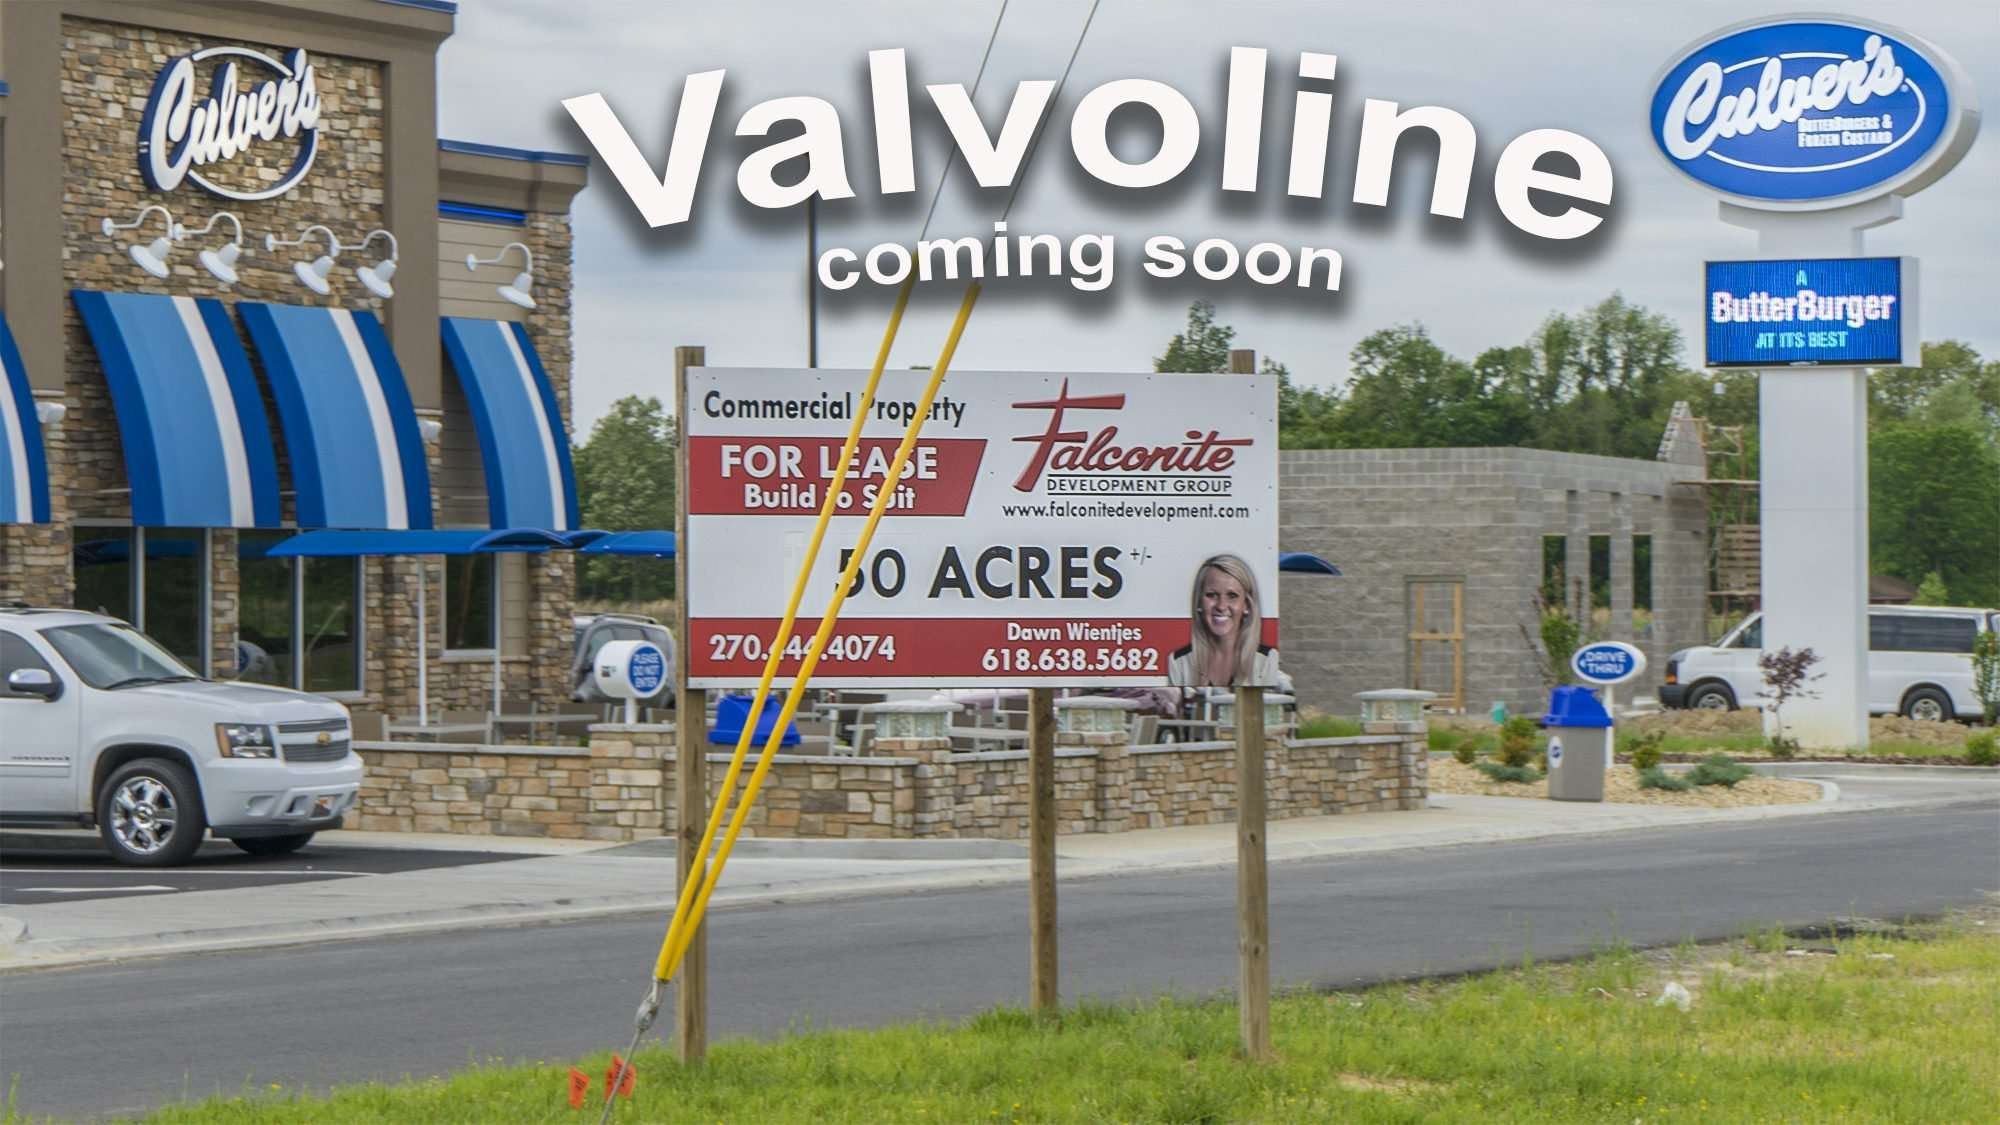 April 03, 2017 - Valvoline under construction next to Culvers Old Hwy 60, Paducah, KY/photonews247.com